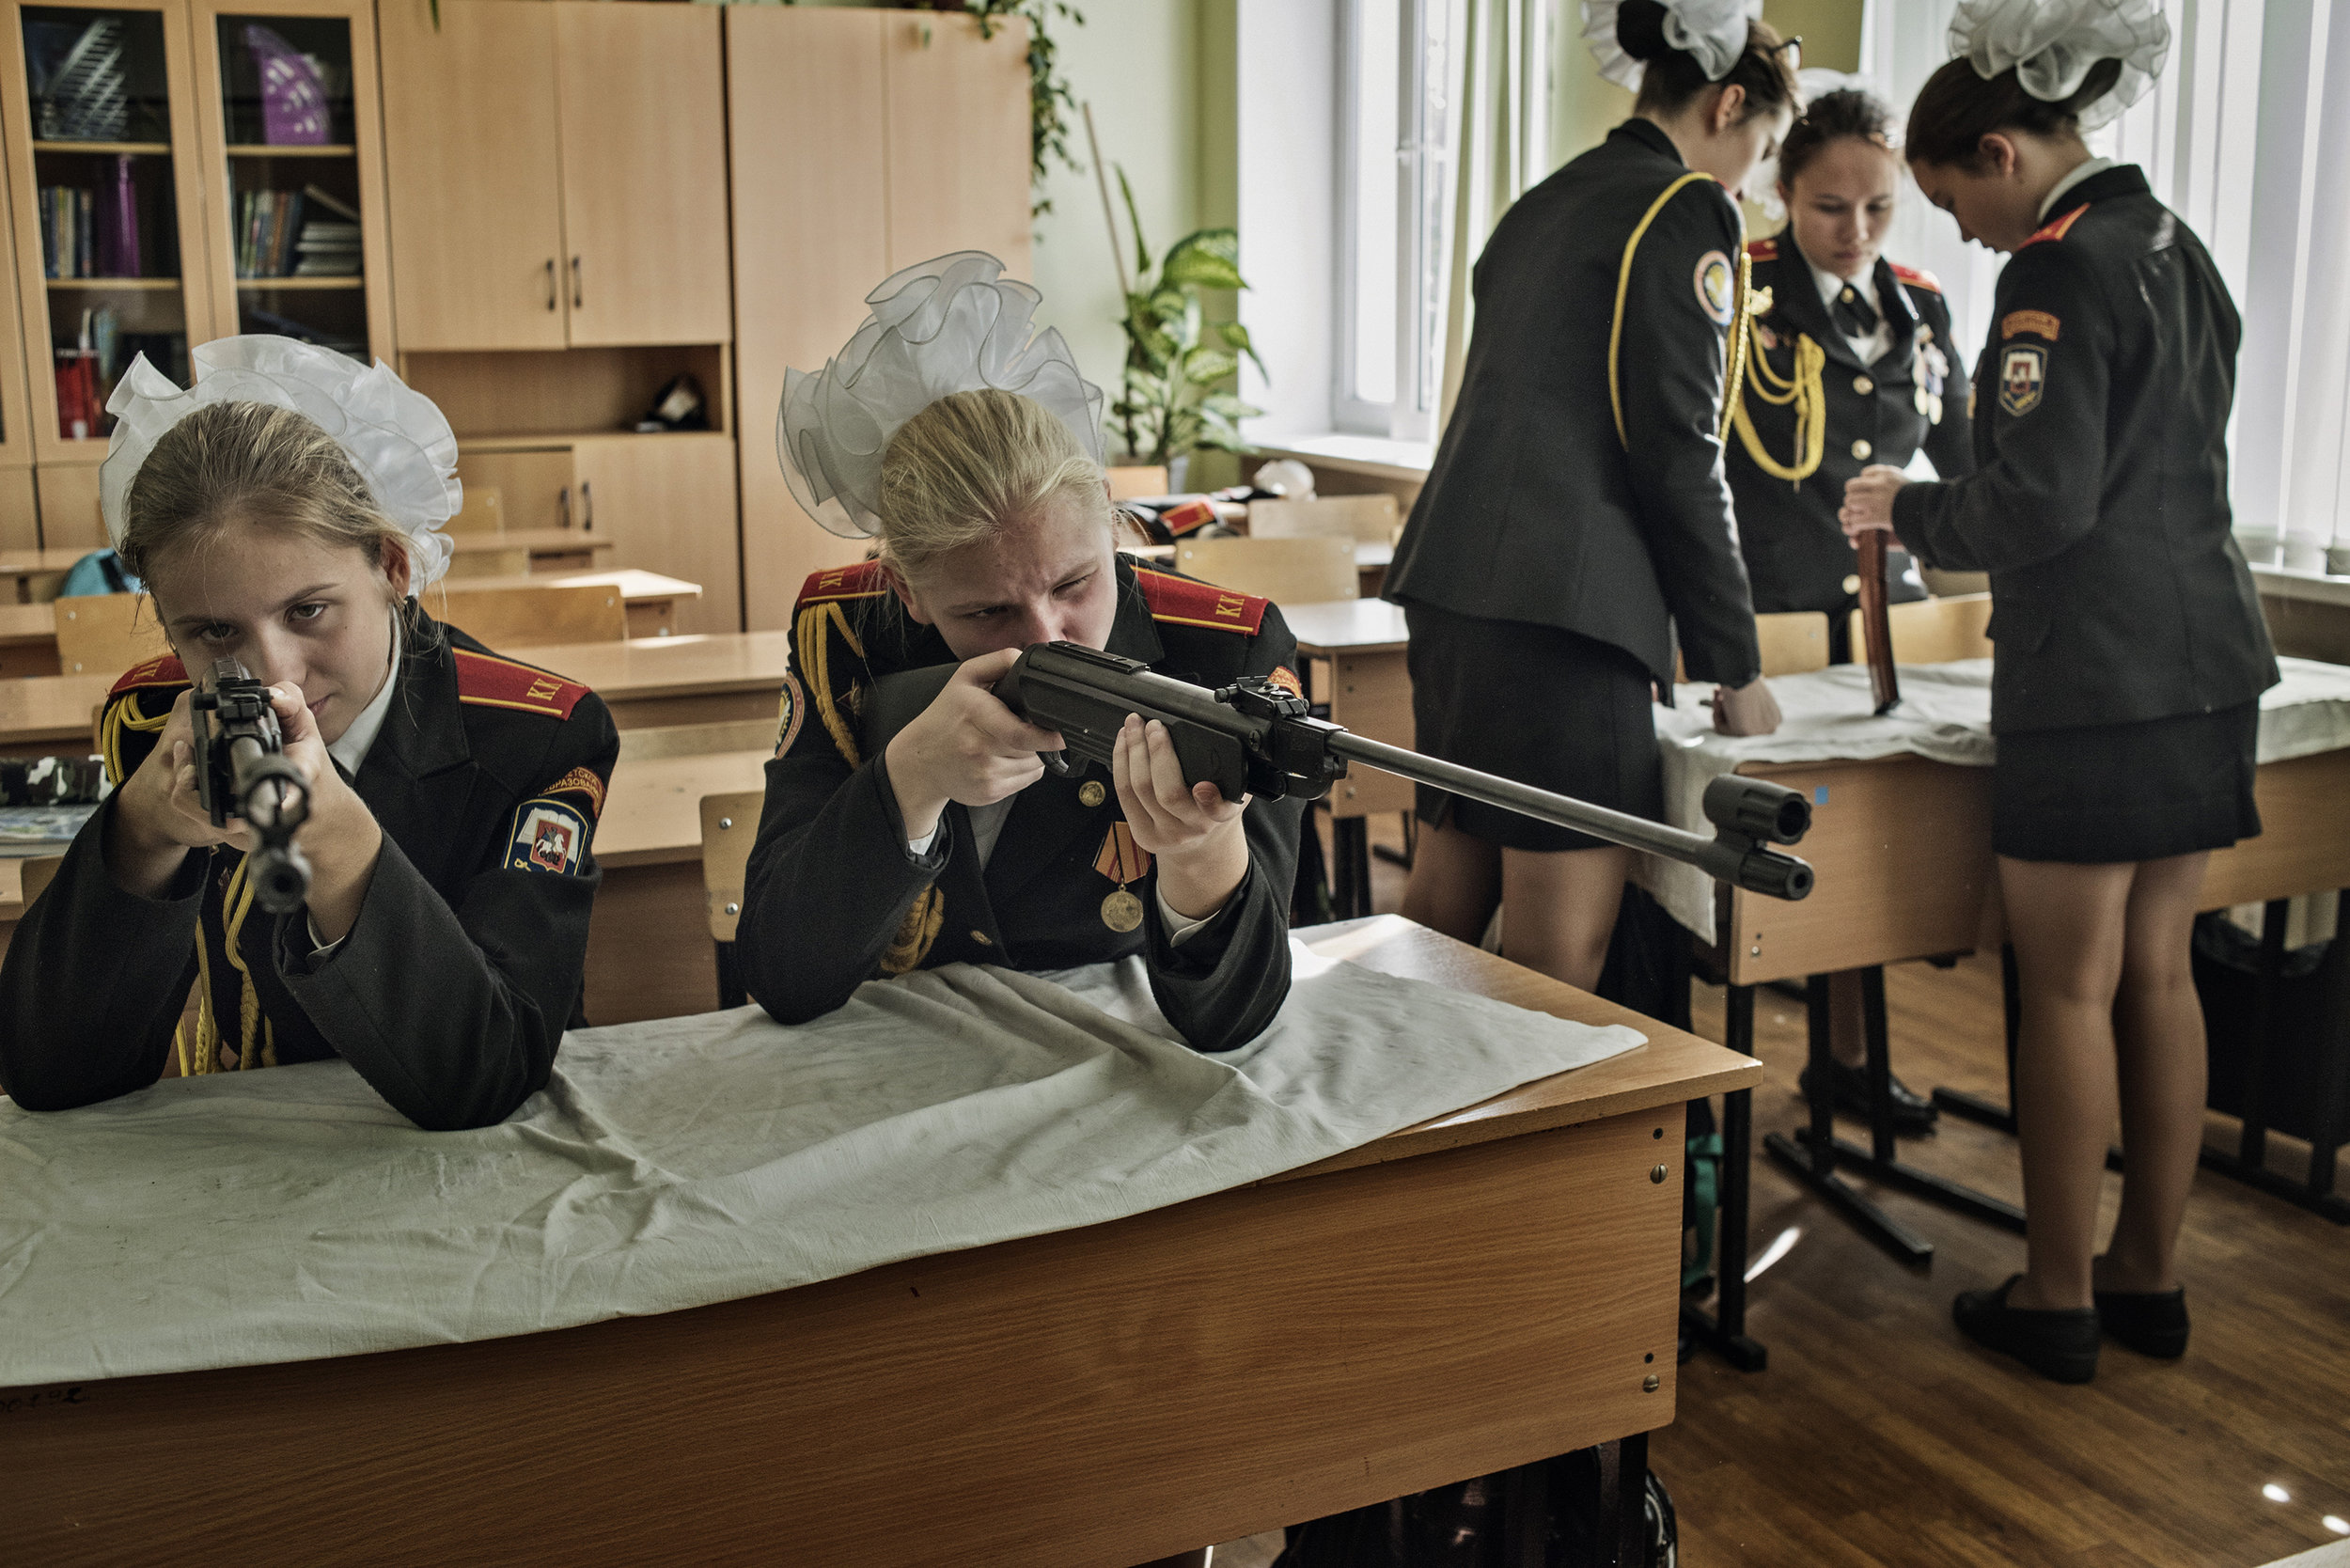 Russia, Moscow, September 2016, Young girls learn how to assemble and shoot rifles at a cadet boarding school.